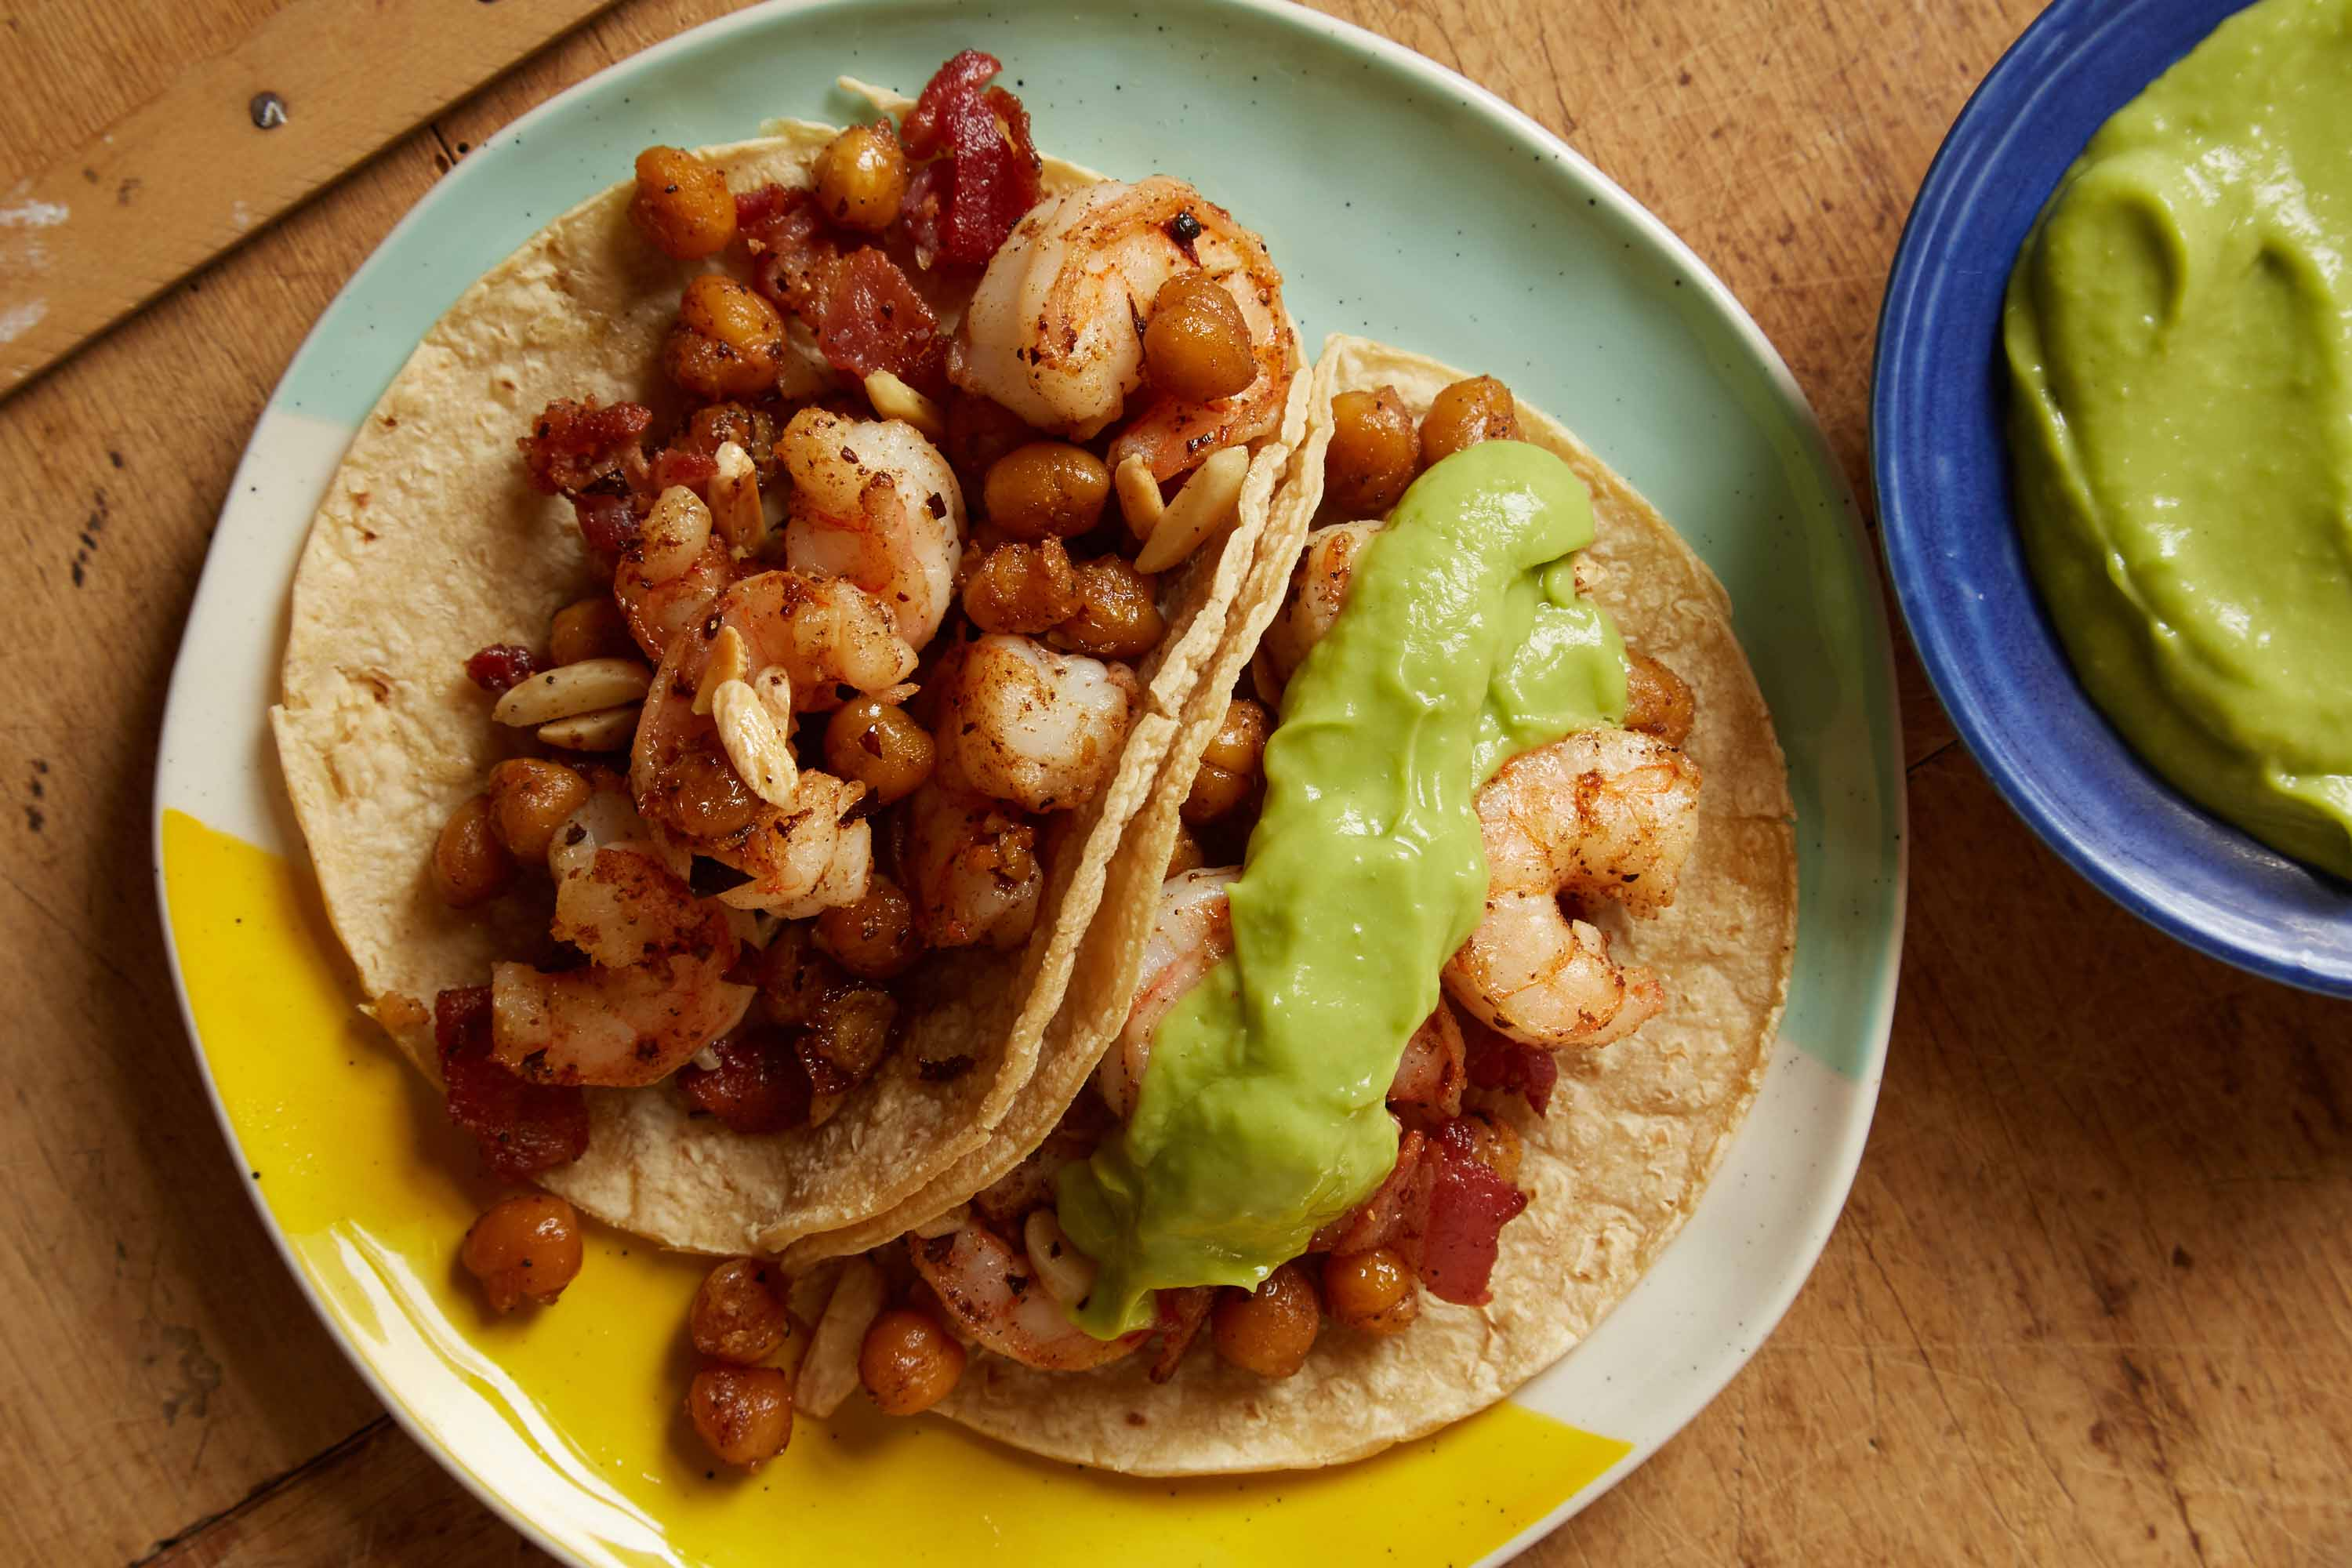 Shrimp, Bacon and Crispy Chickpea Tacos with Smooth Guacamole